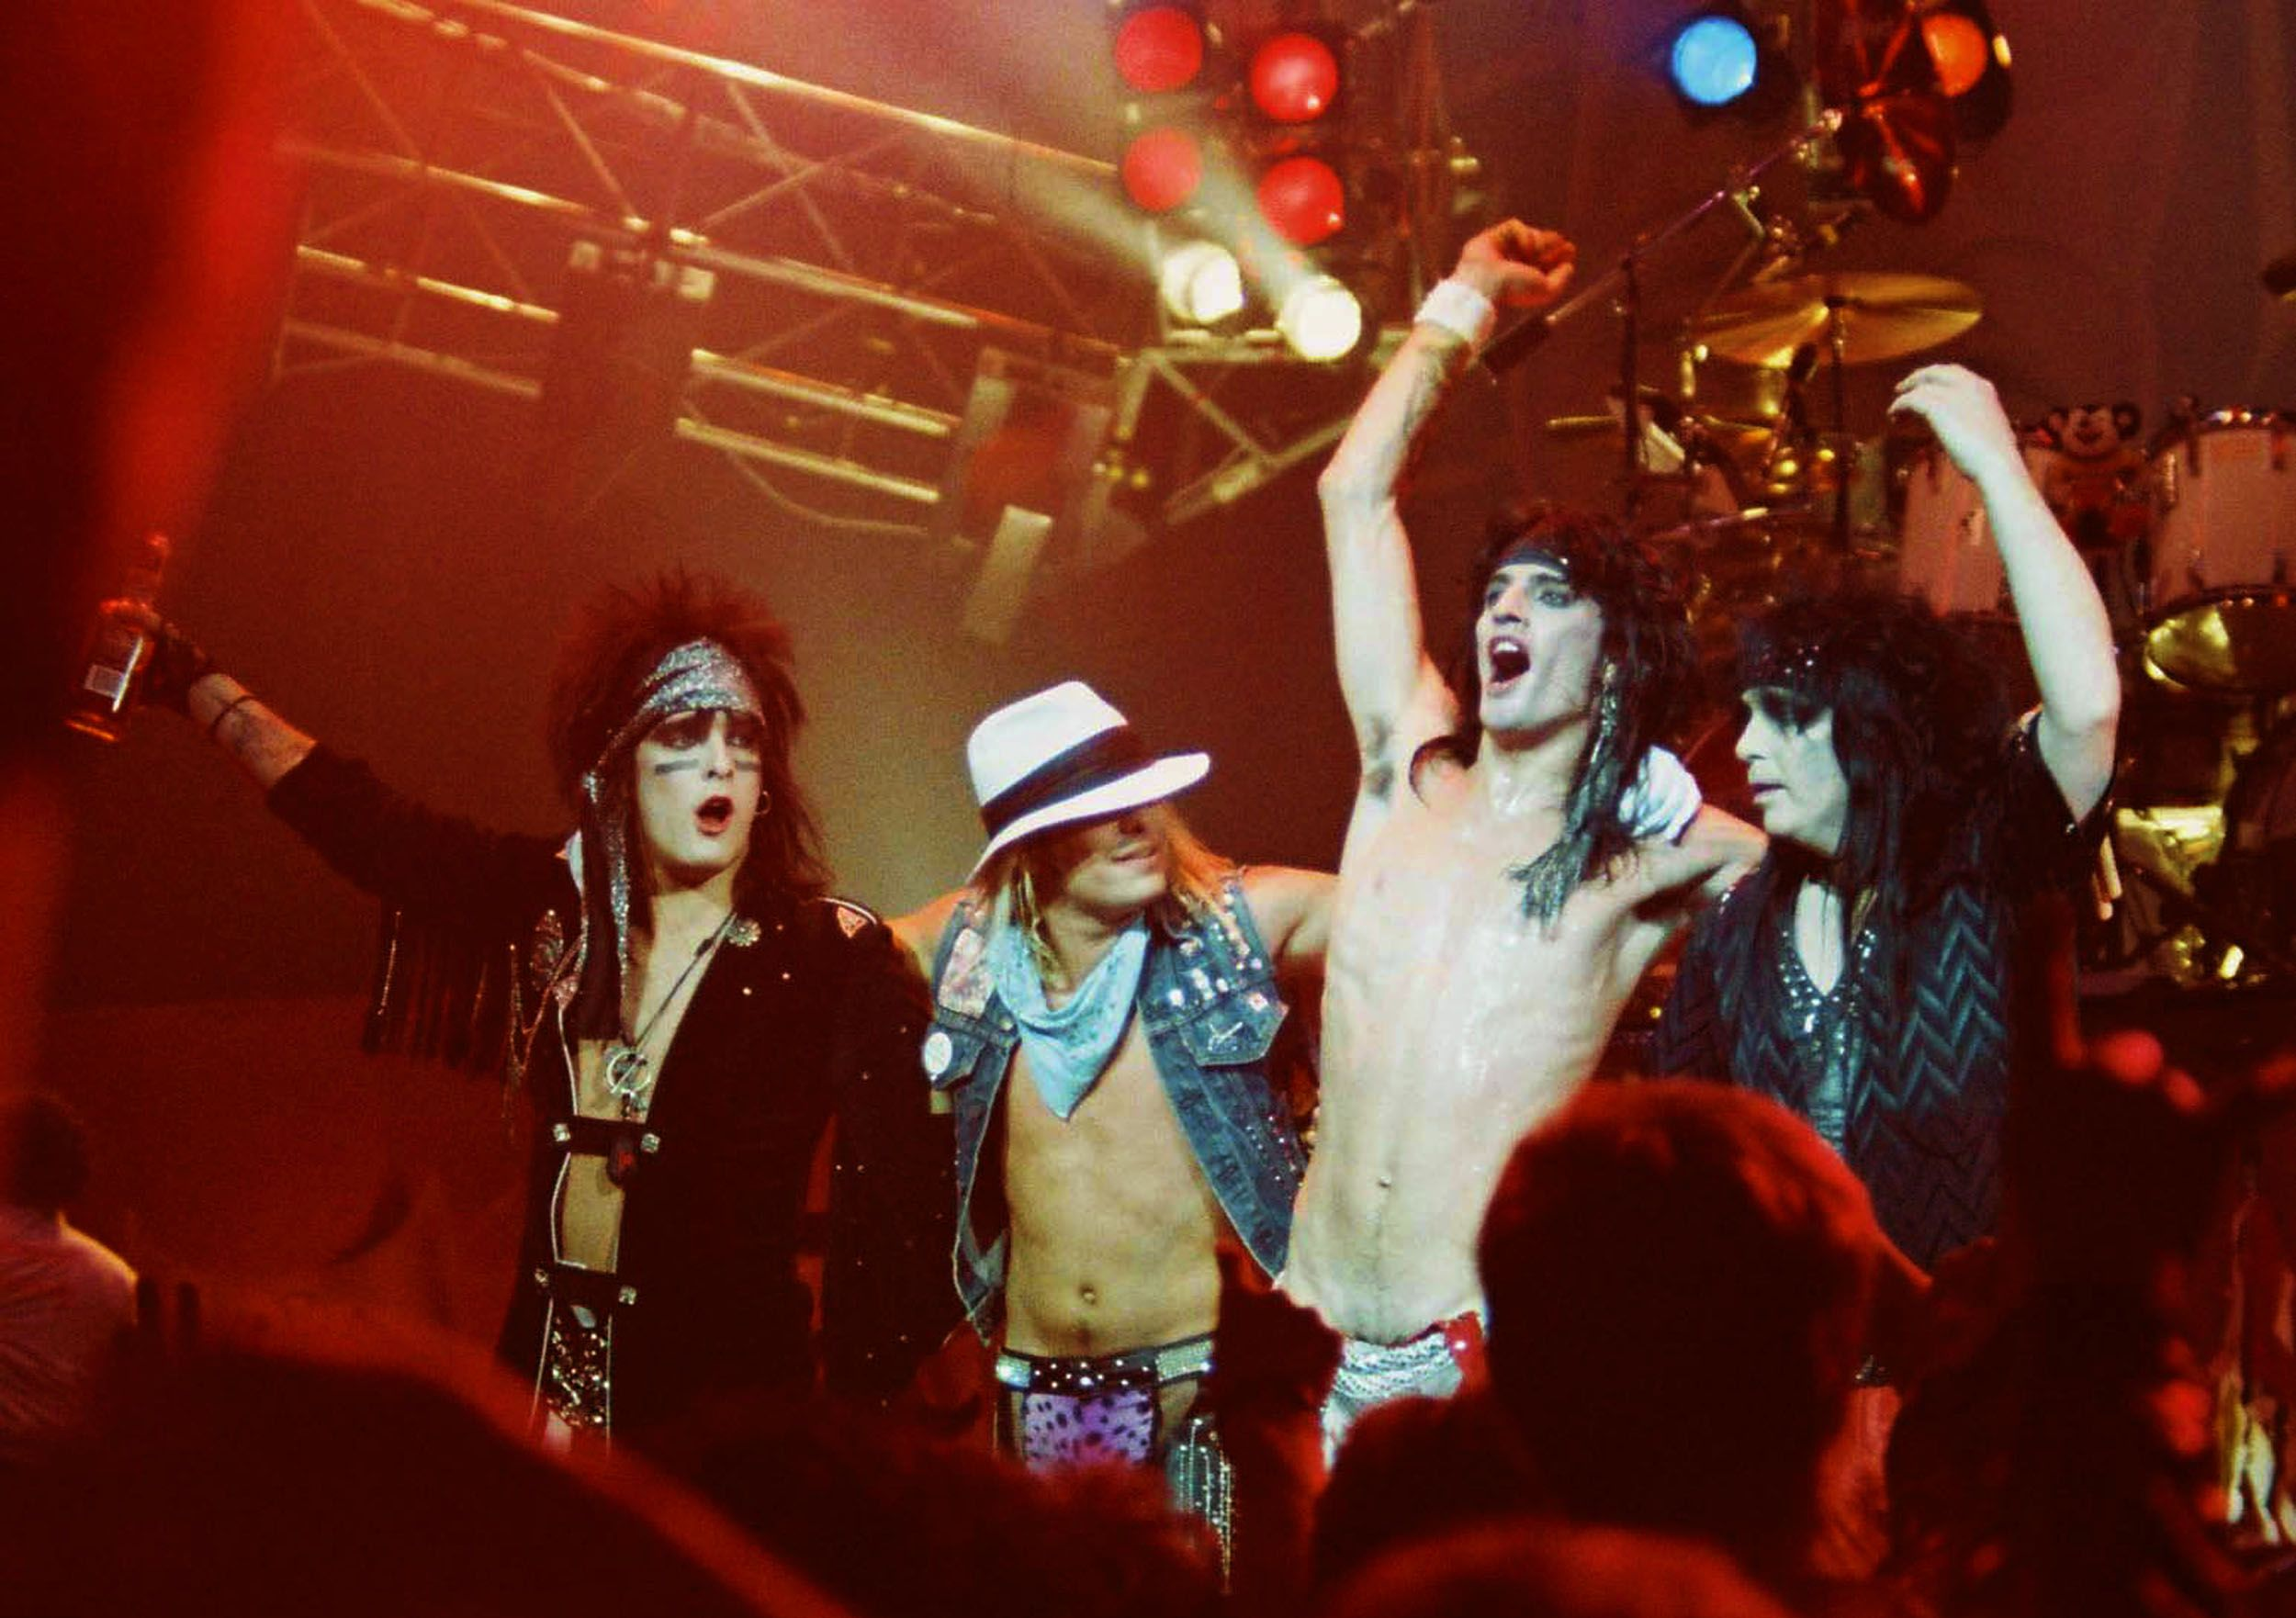 Motley Crue Photos Pictures Of Motley Crue Partying And Playing Music In The 1980s